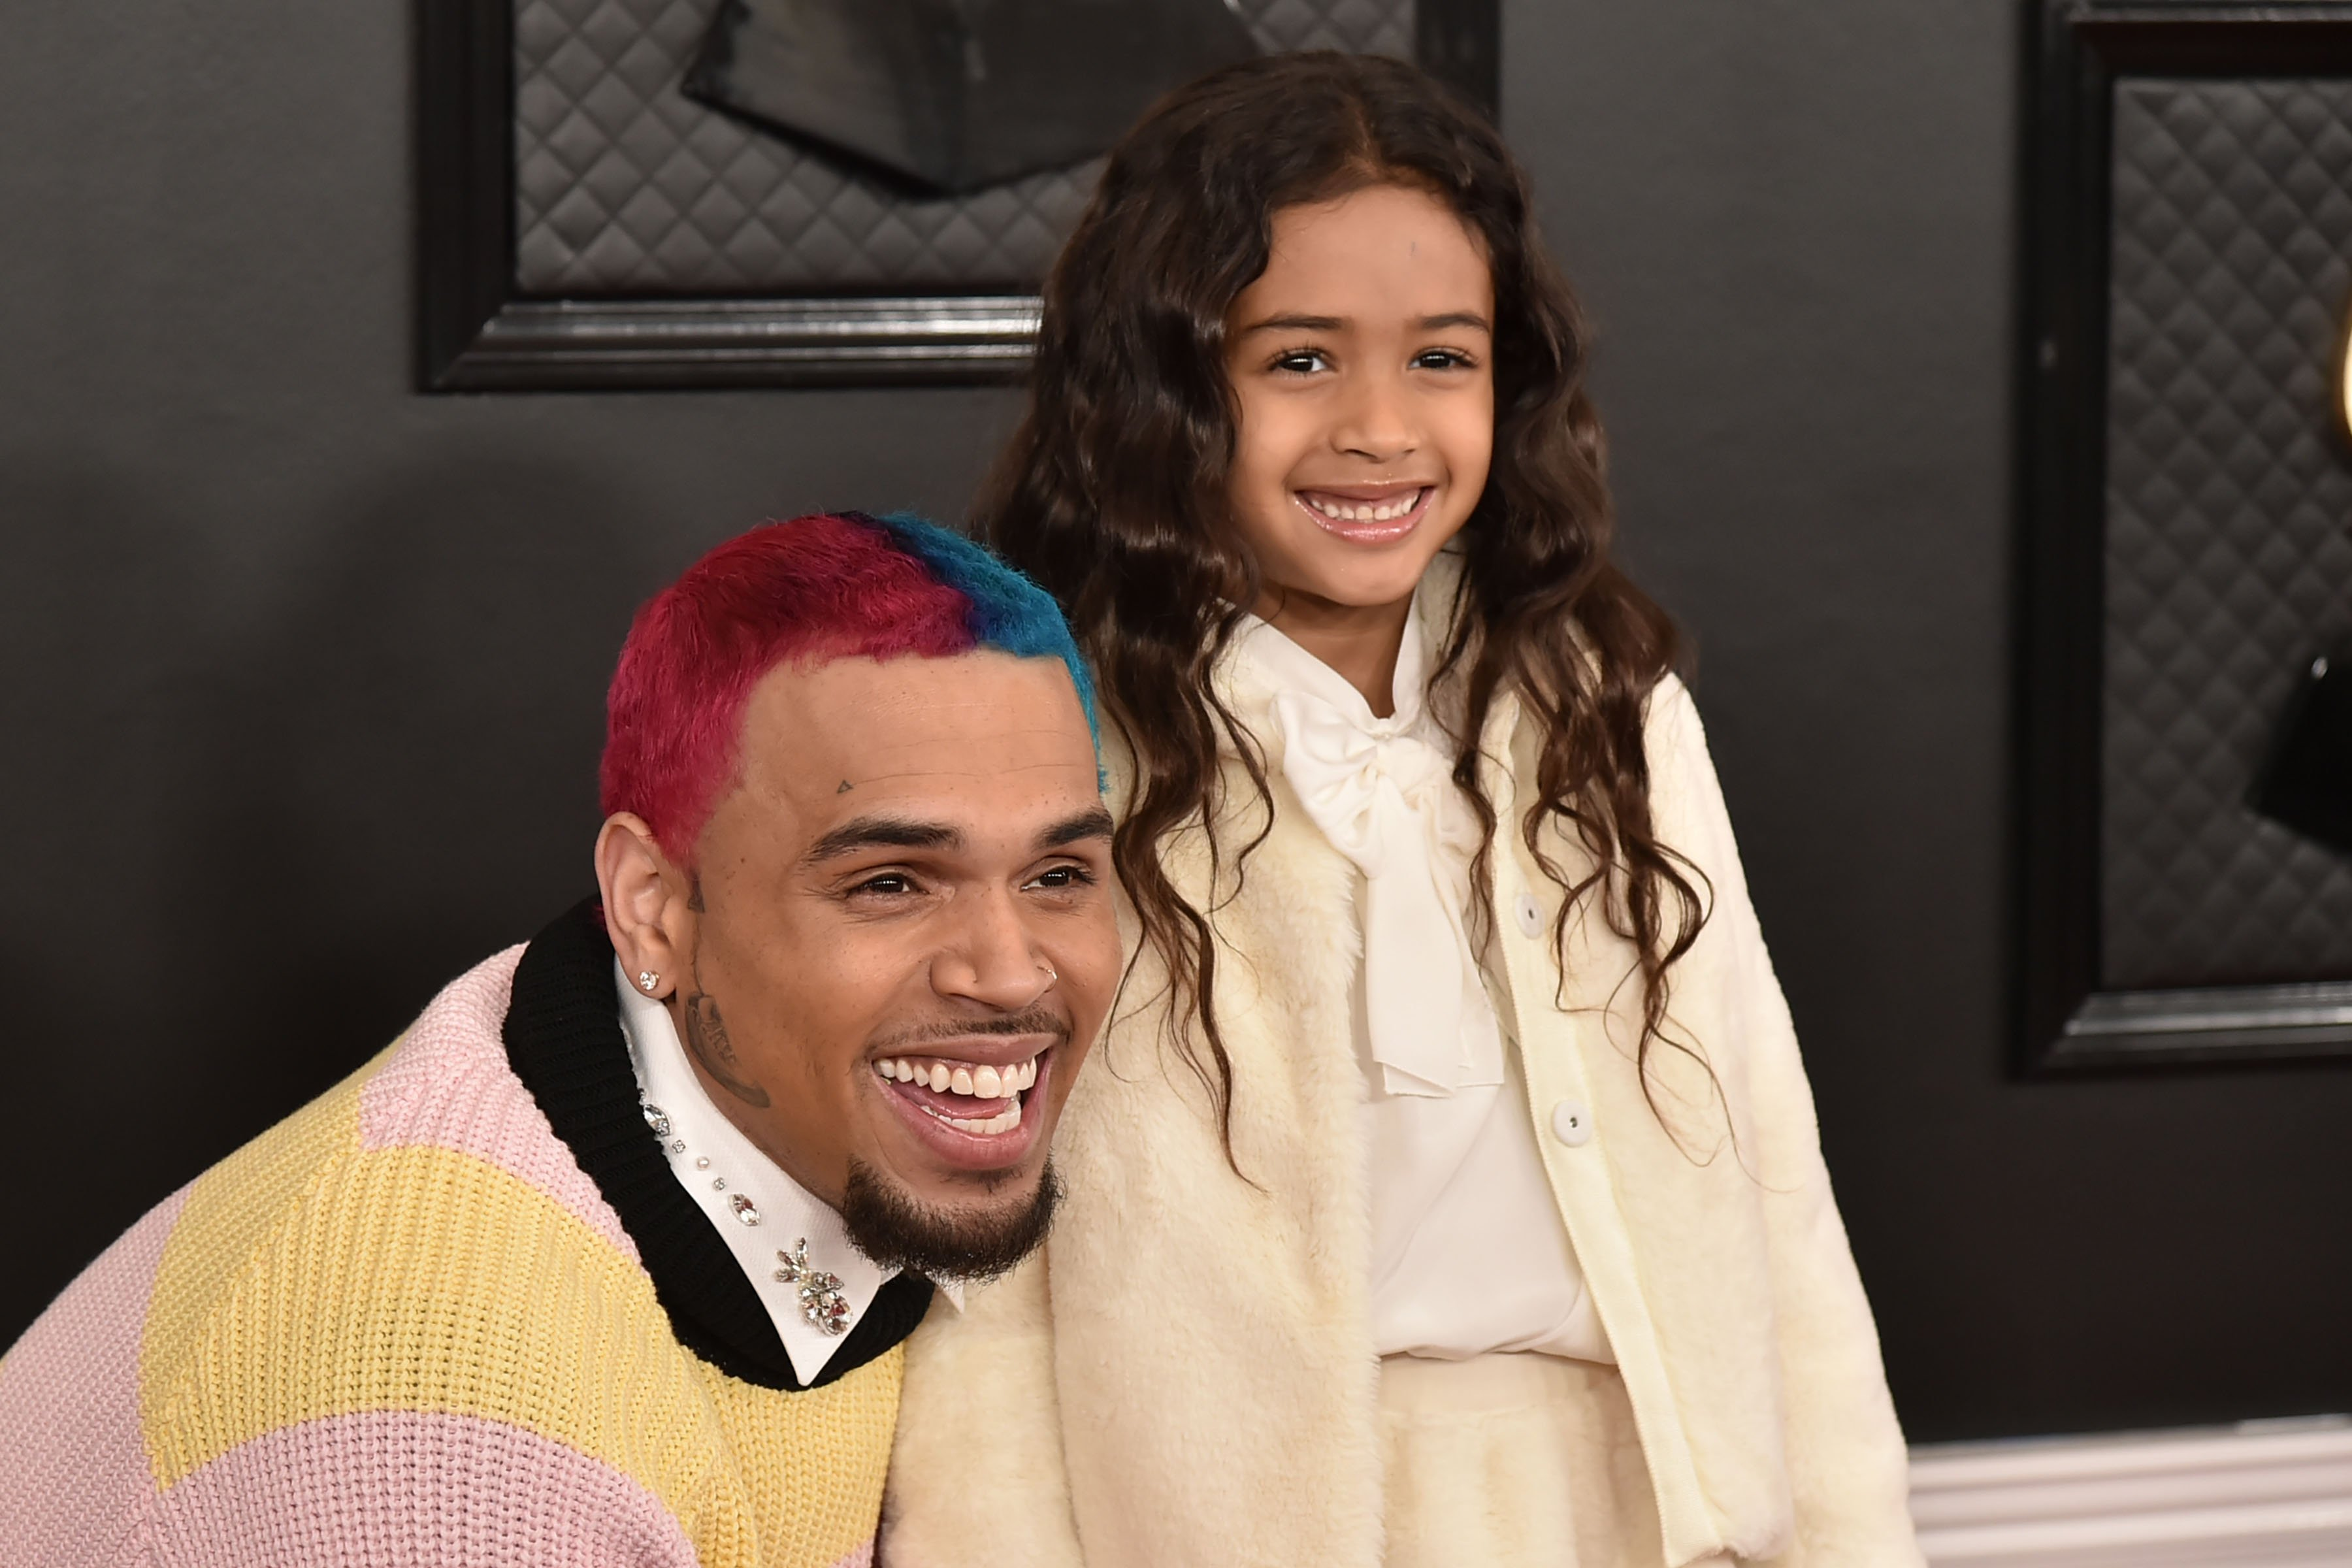 Chris Brown and his daughter Royalty Brown at the 62nd Annual Grammy Awards in 2020 | Source: Getty Images